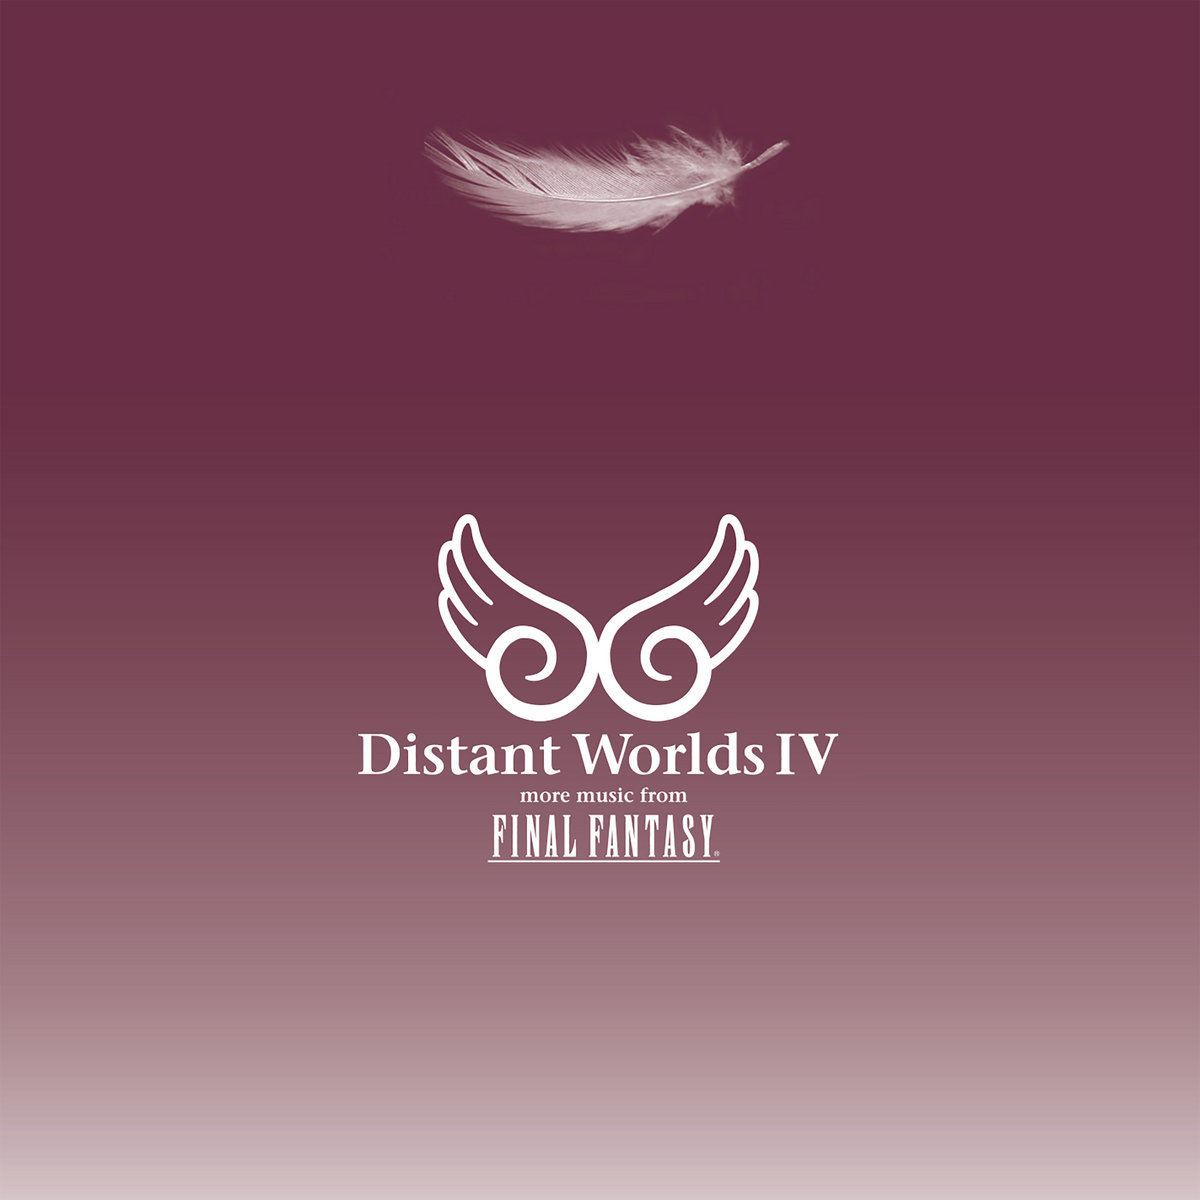 Distant Worlds IV: more music from FINAL FANTASY | Distant Worlds